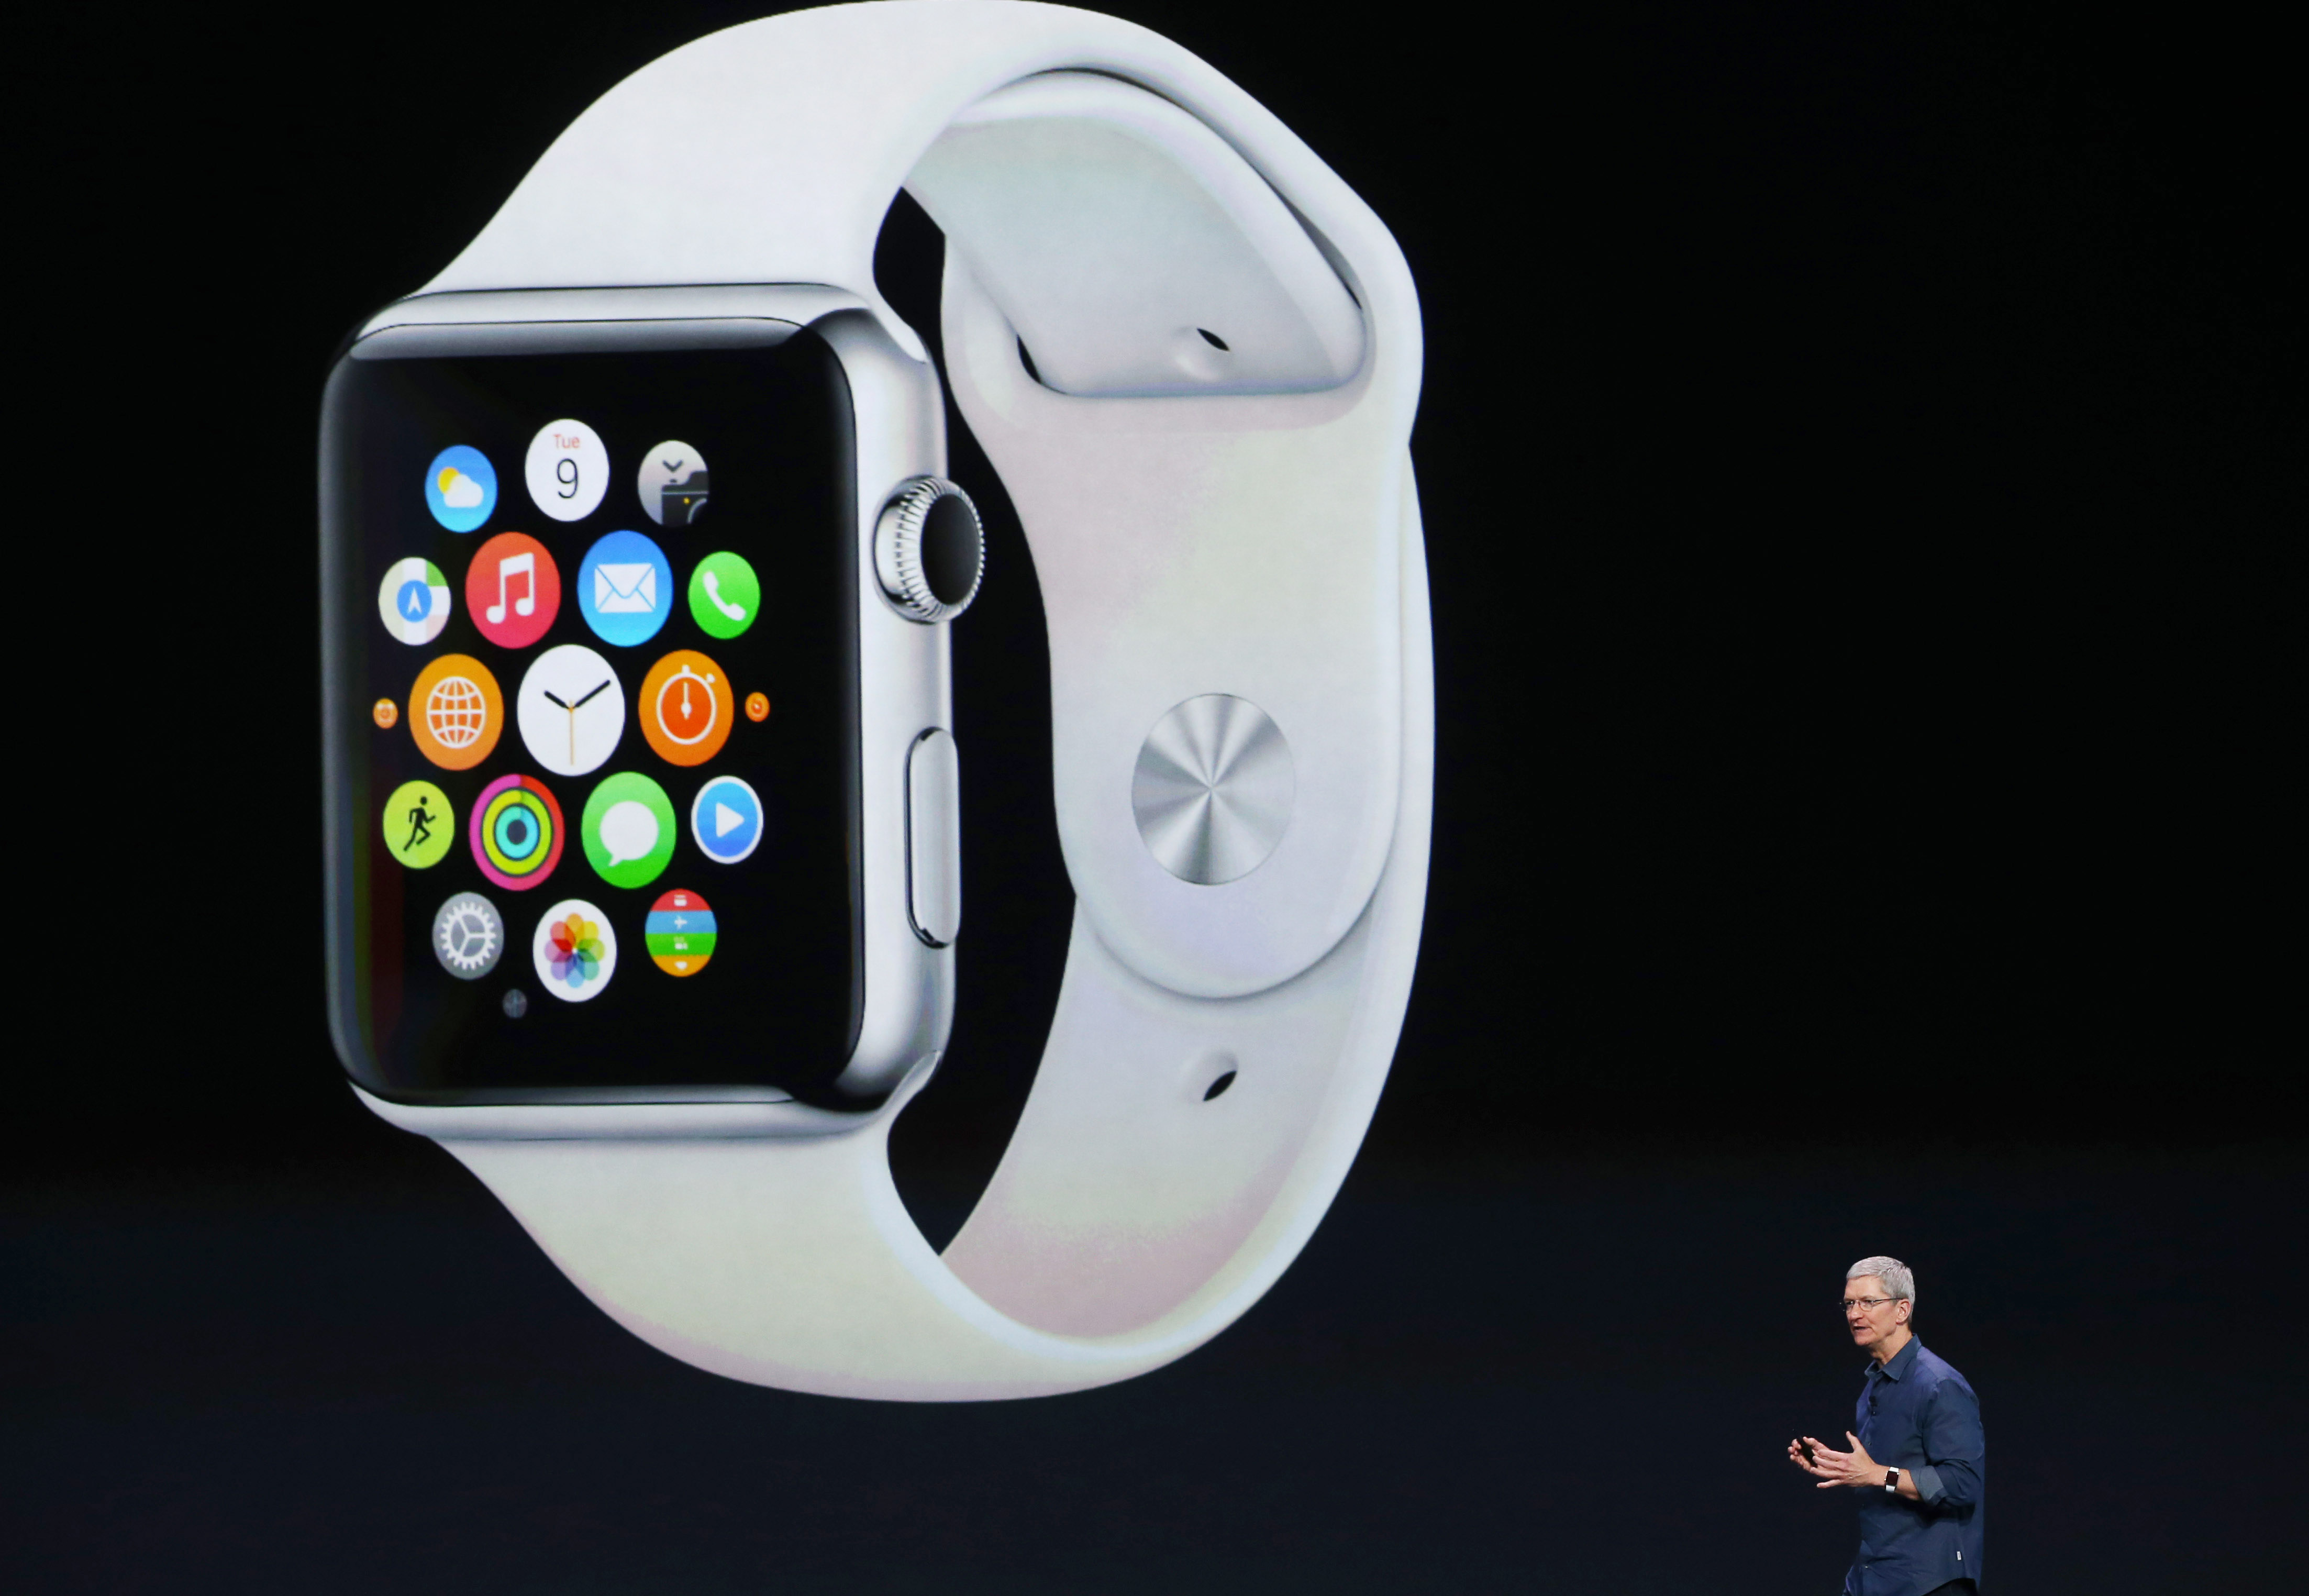 Apple CEO Tim Cook announces the Apple Watch during an Apple special event in Cupertino, Calif. on Sept. 9, 2014.